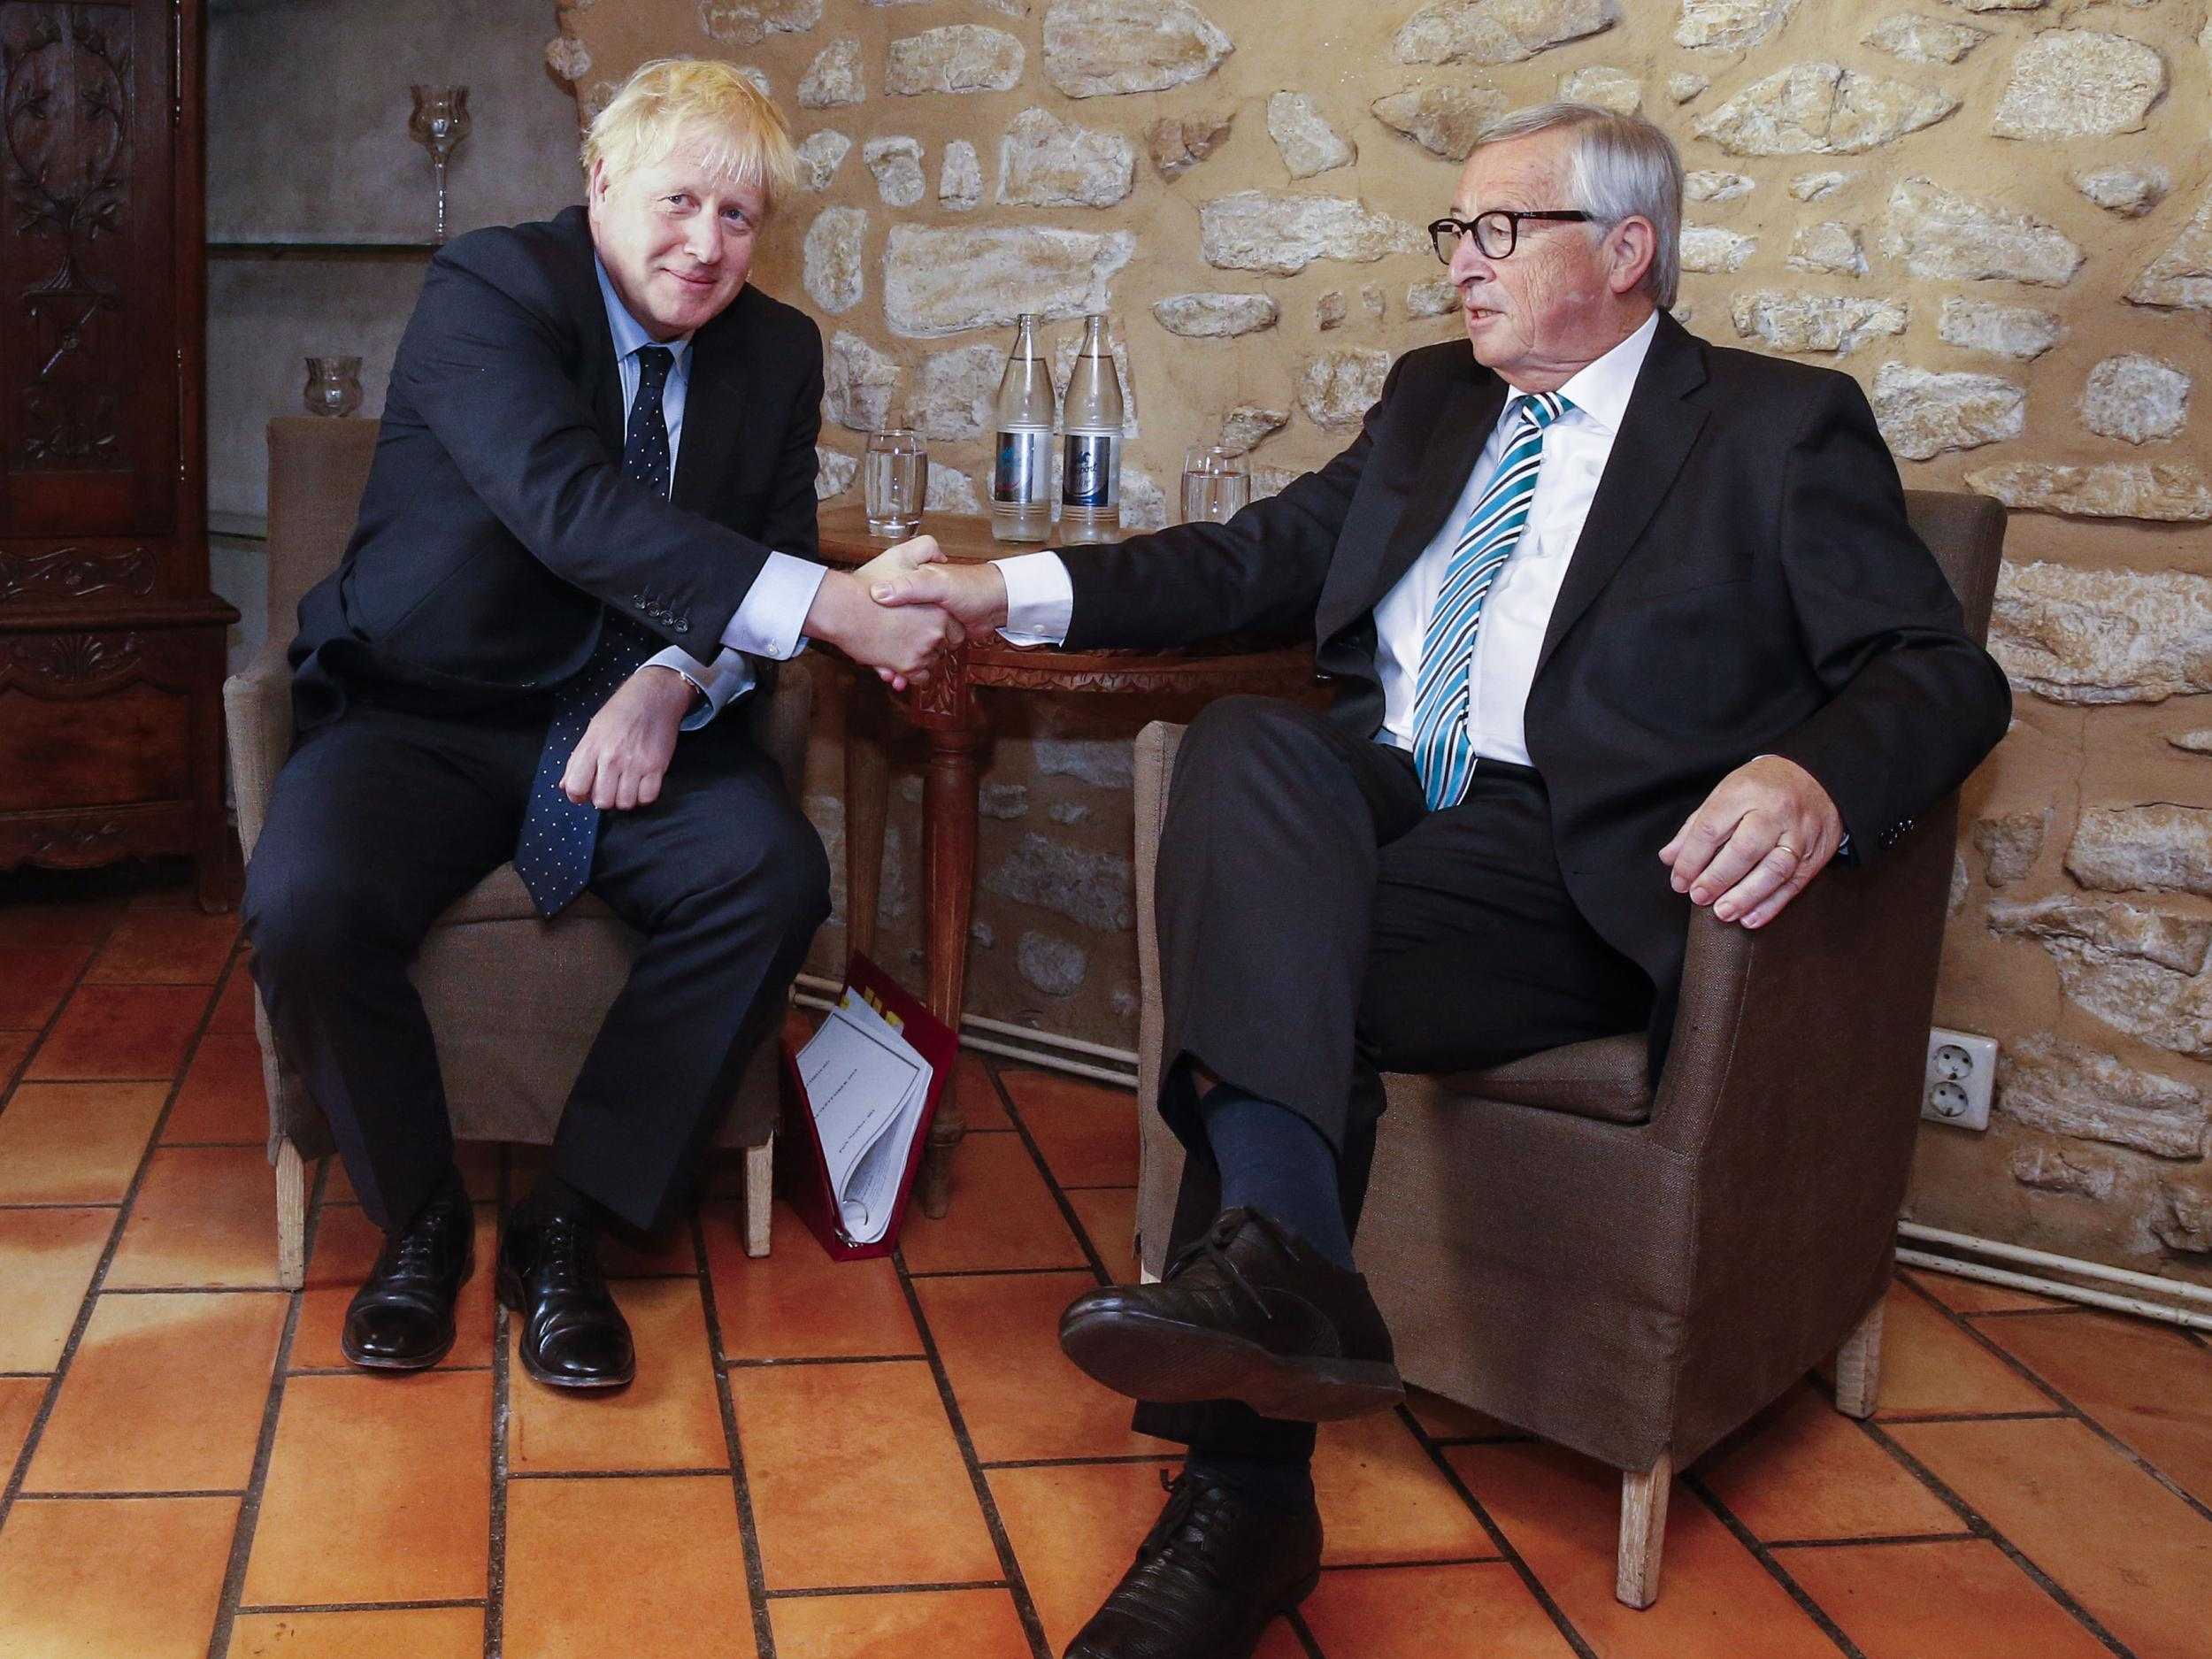 Brexit: Boris Johnson accused of being 'out of his depth' after rebuff in talks with EU's Juncker